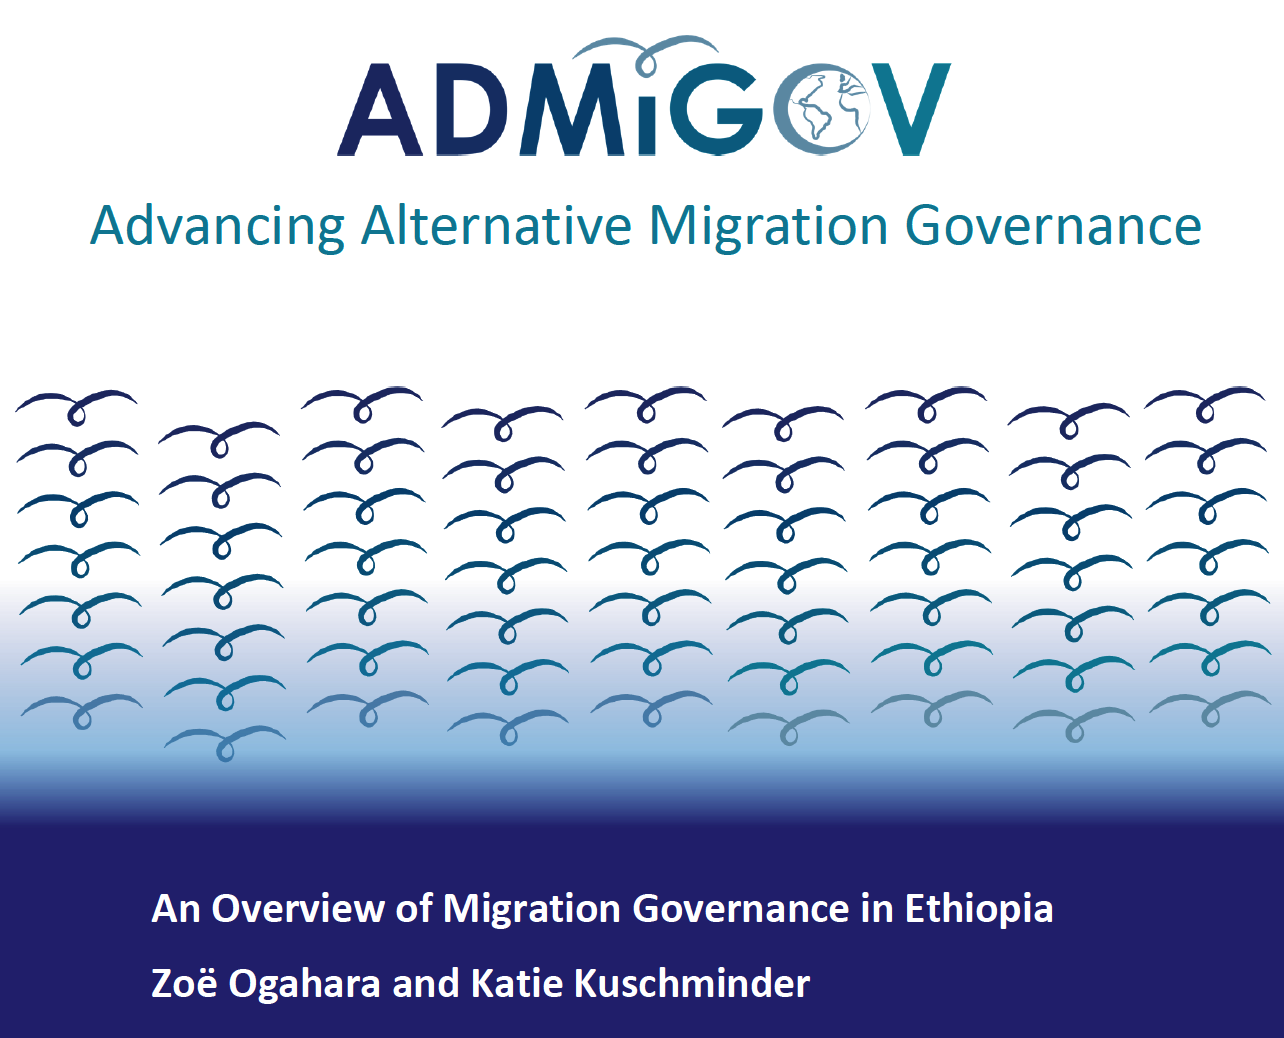 ADMIGOV Background Paper: Migration Governance in Ethiopia